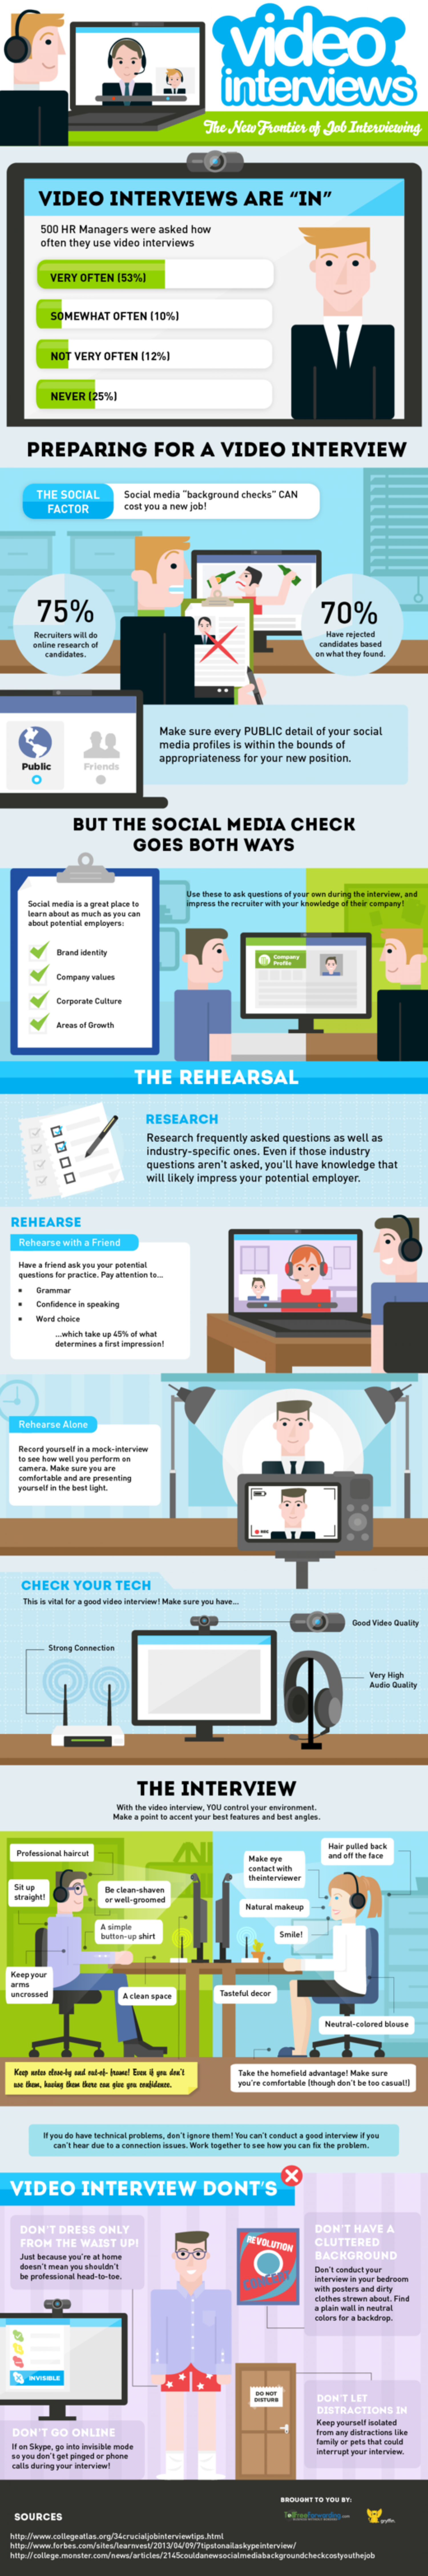 Video: The New Frontier of Job Interviewing Infographic